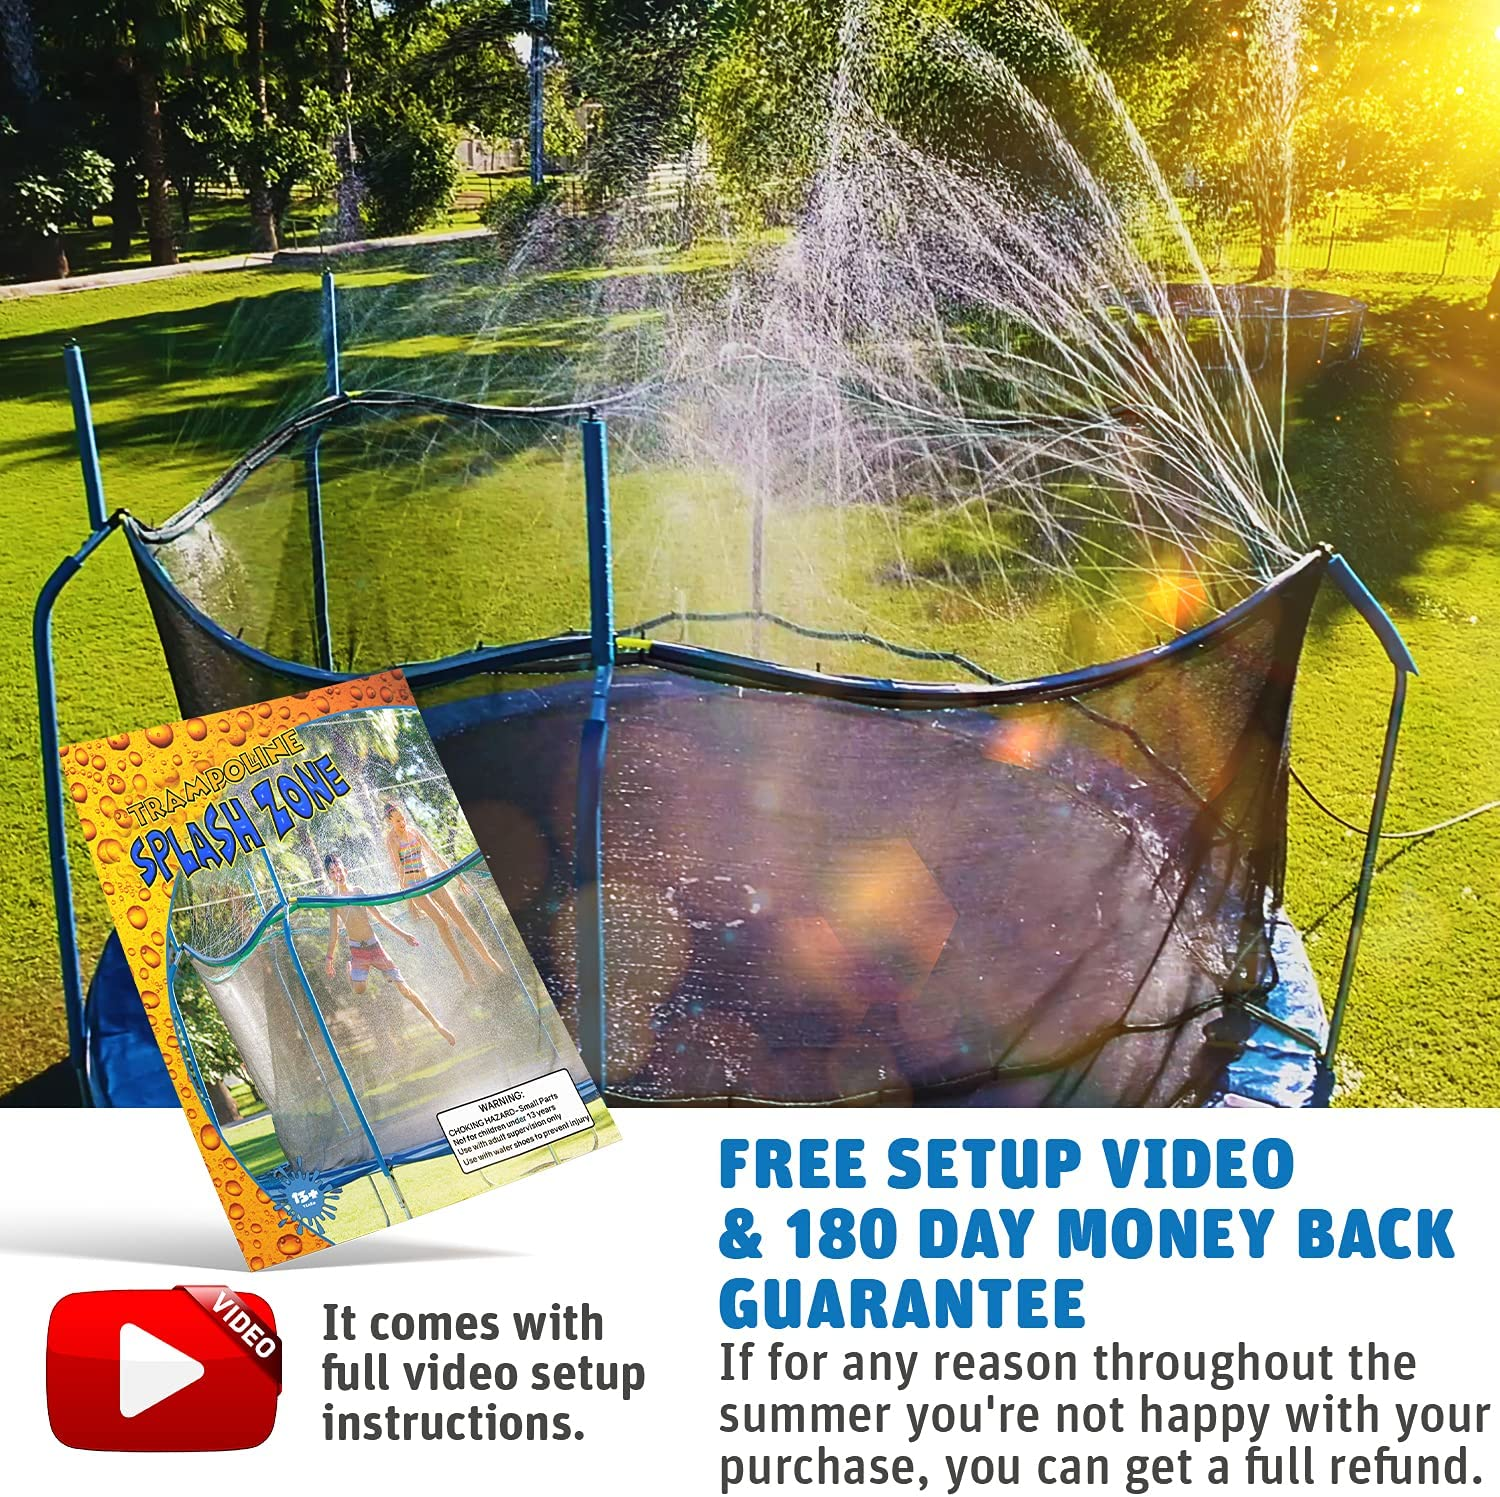 Waterpark Toys for Boys Girls and Adults Kids Fun Summer Outdoor Water Park Game Sprinkler Accessories Included Toy Attaches on Safety Net Pole ThrillZoo Trampoline WaterWhirl